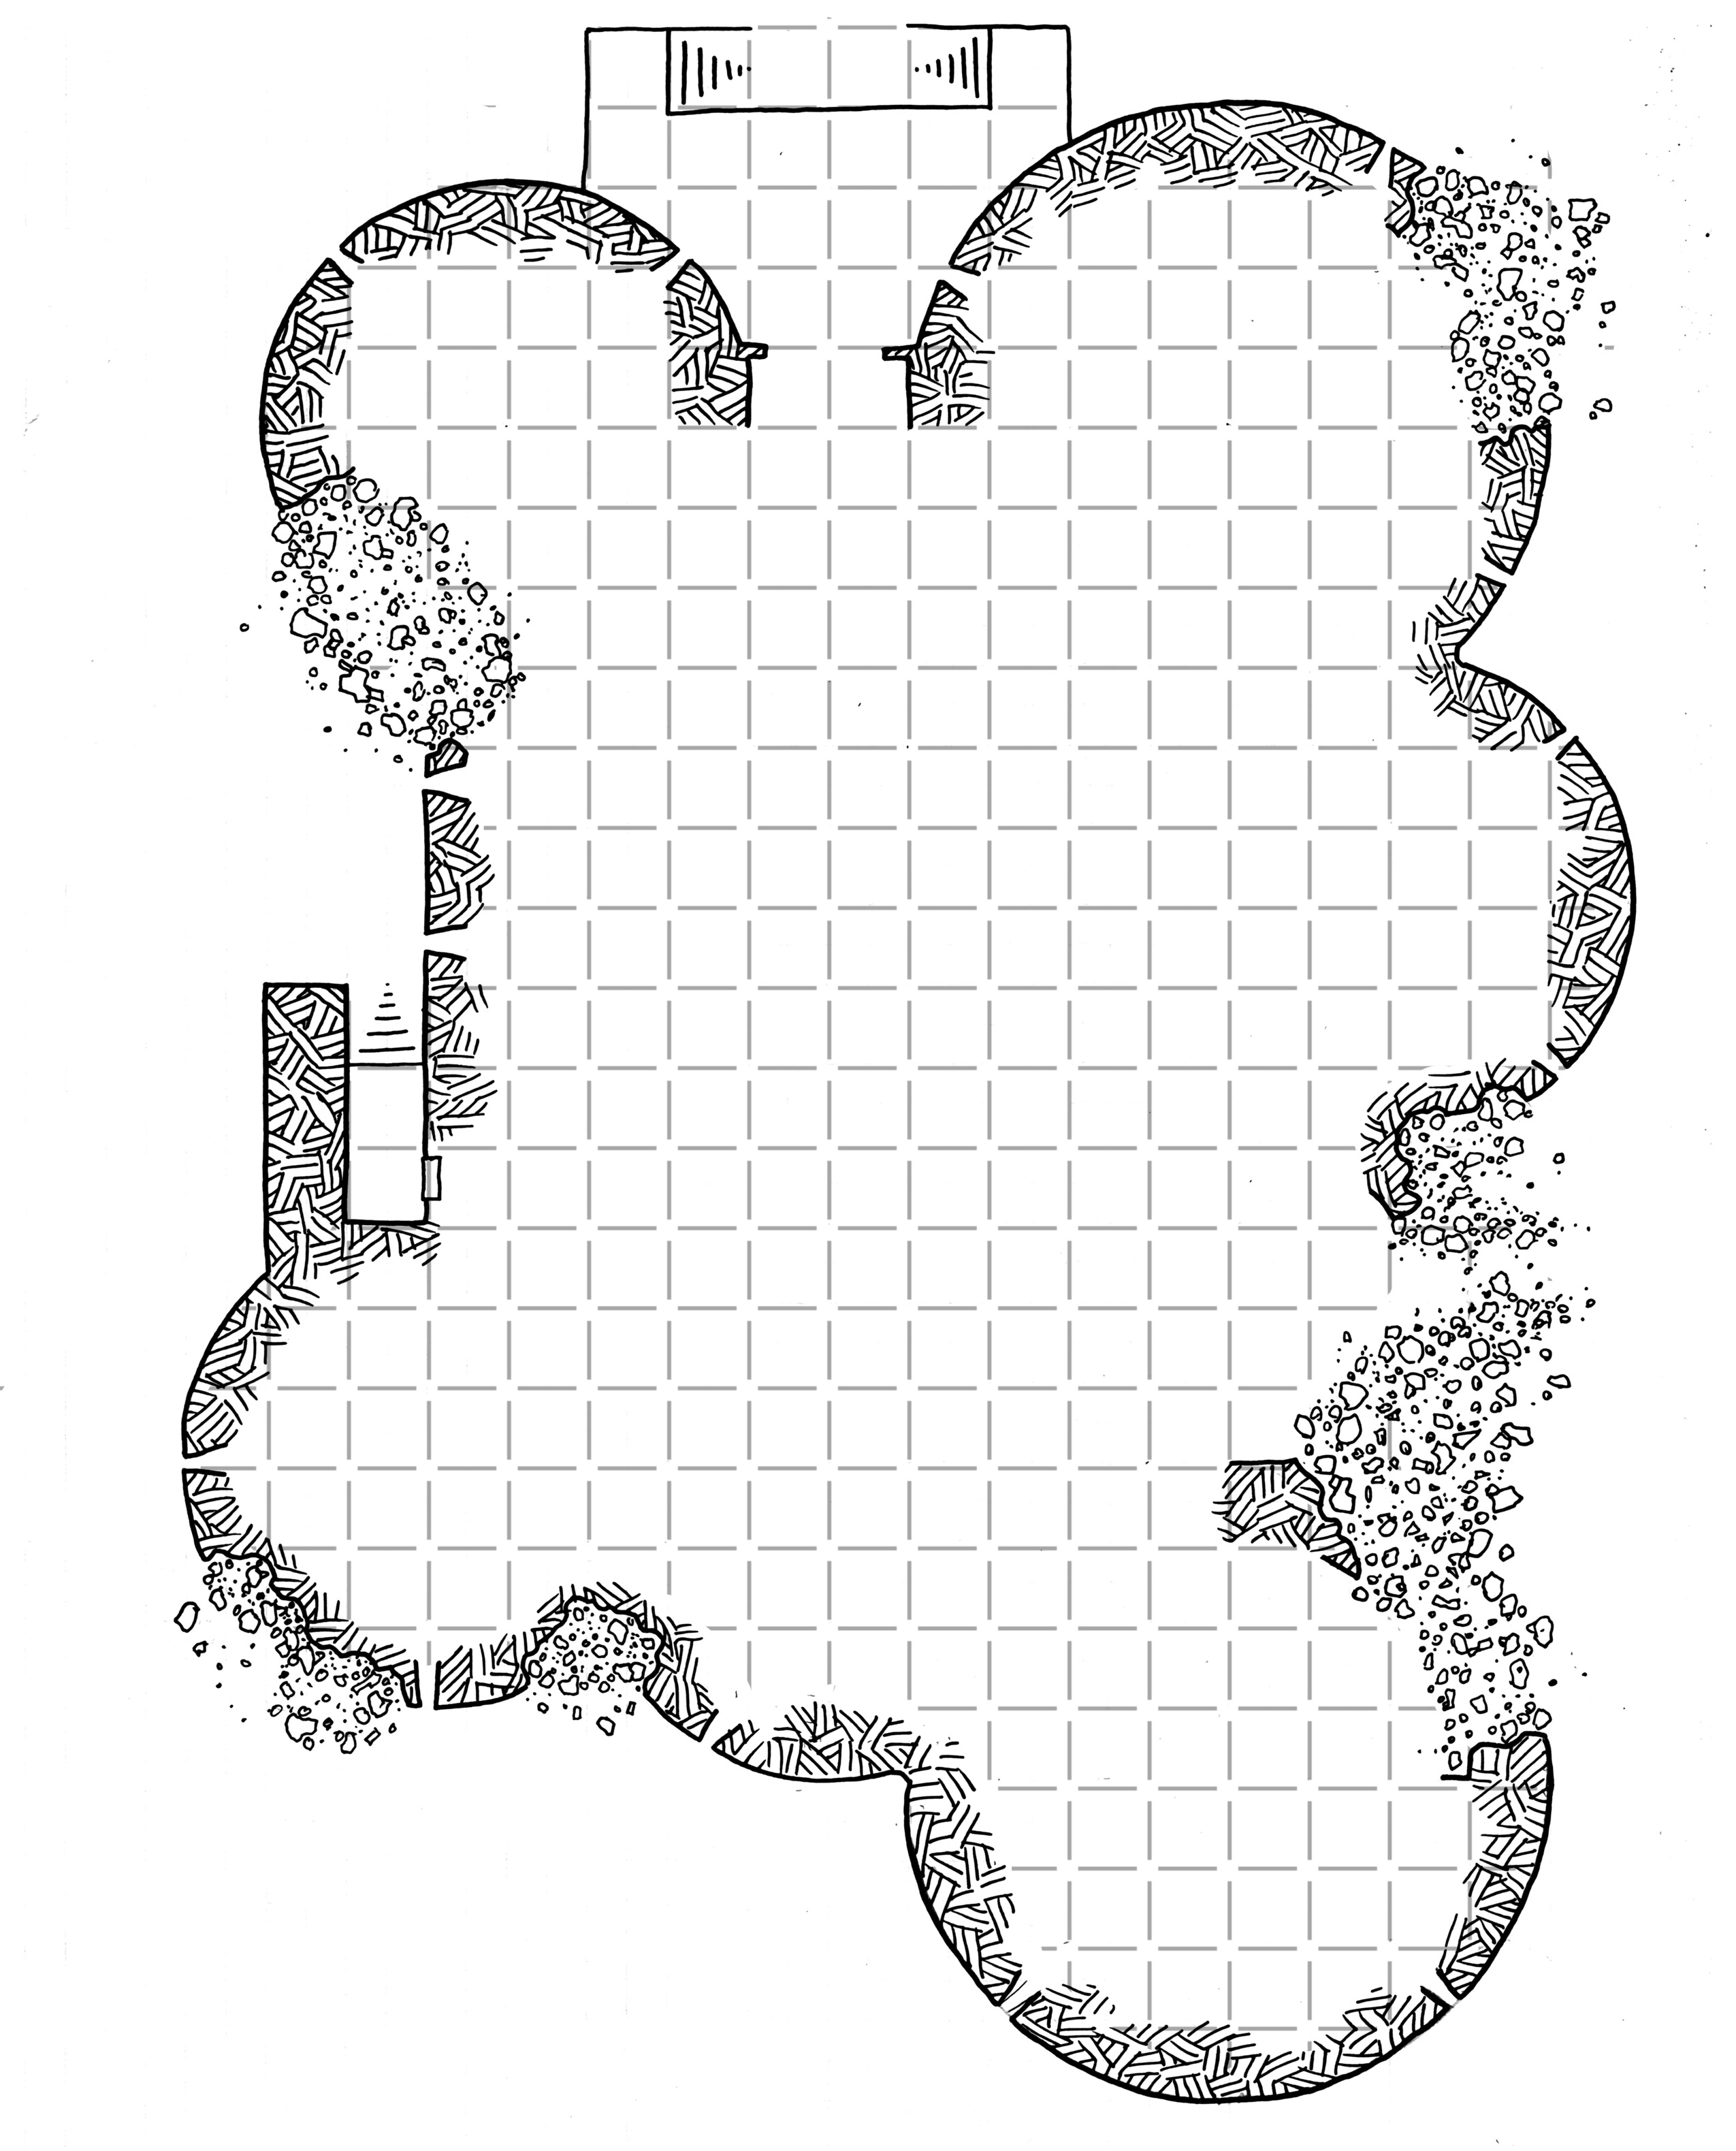 photograph about Cragmaw Hideout Printable Map identified as Friday Map] Cragmaw Castle Gamers Map Dysons Dodecahedron